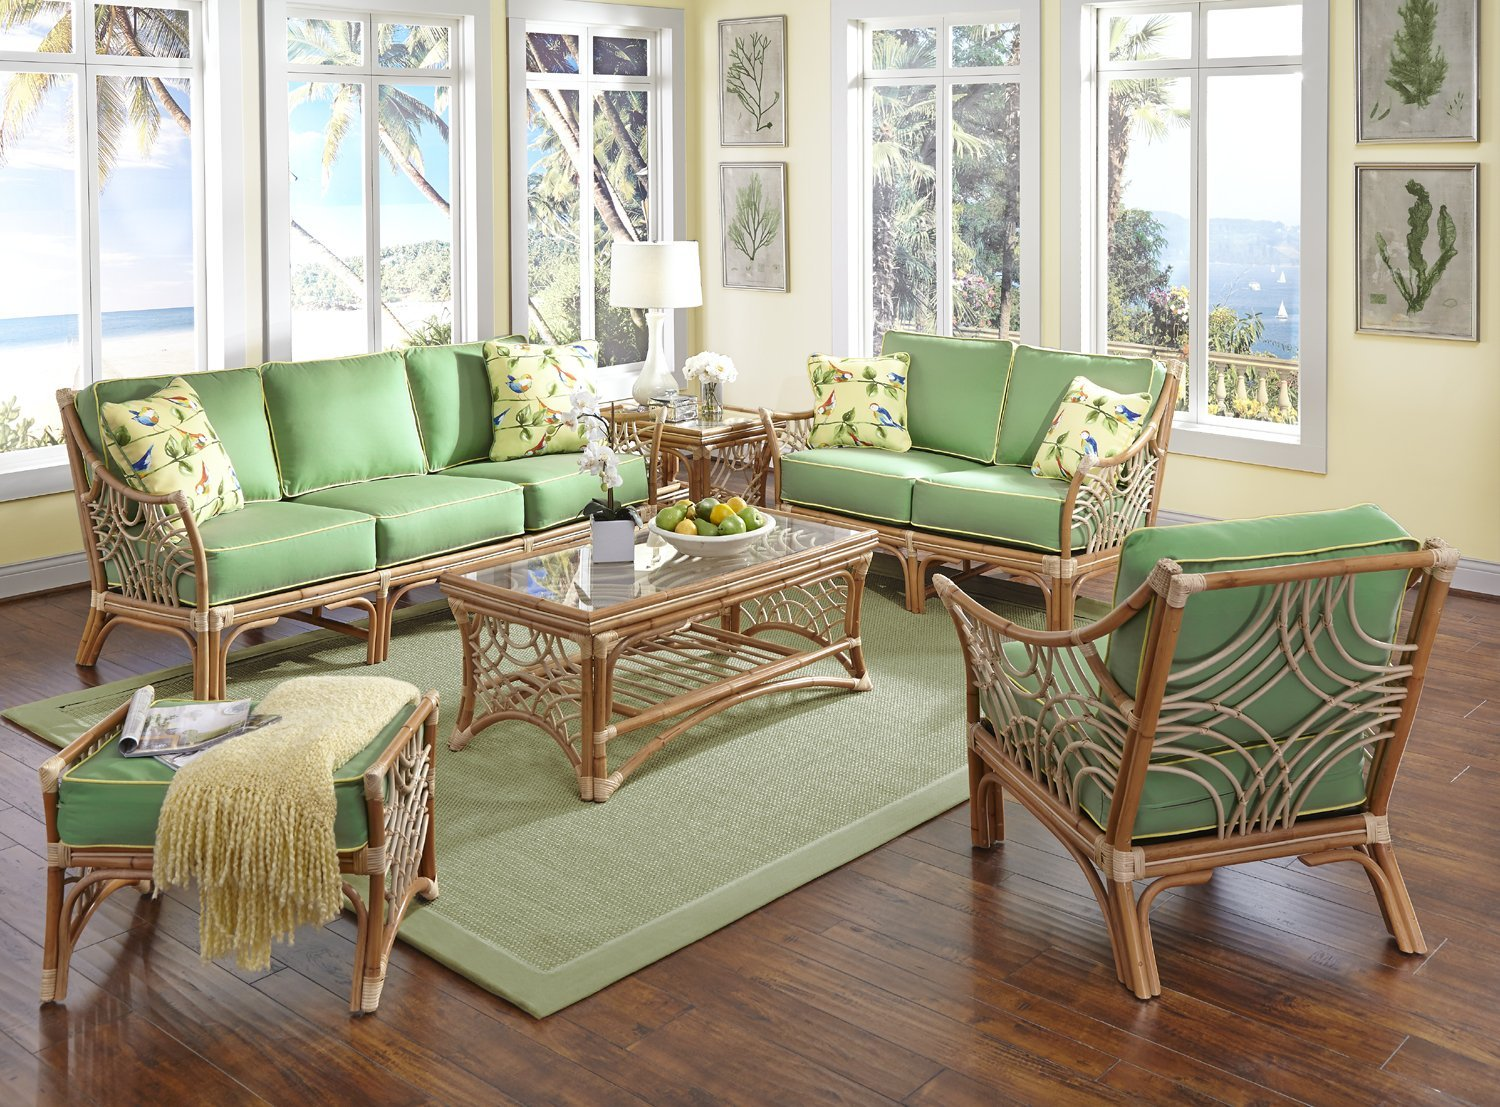 Get quotations · bali rattan wicker 6 piece living room set includes sofa loveseat lounge chair